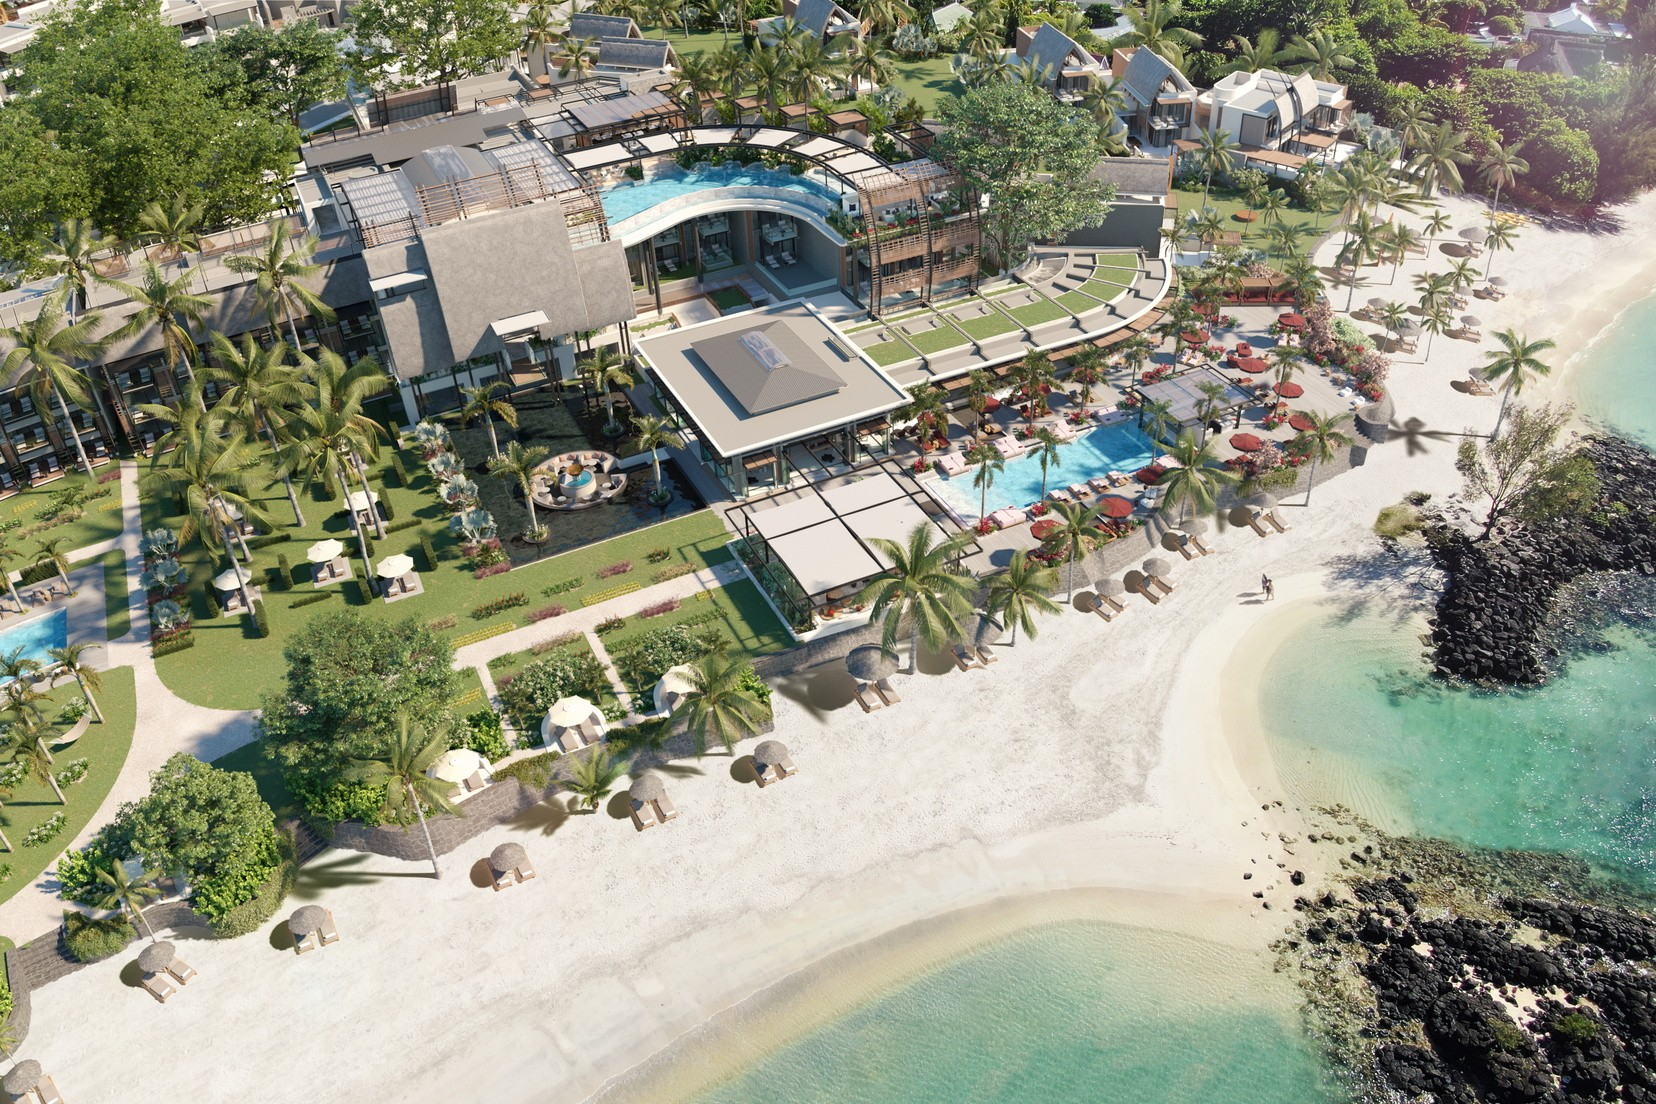 Stunning new luxury hotel to bring boutique-style resort experience to Mauritius this November